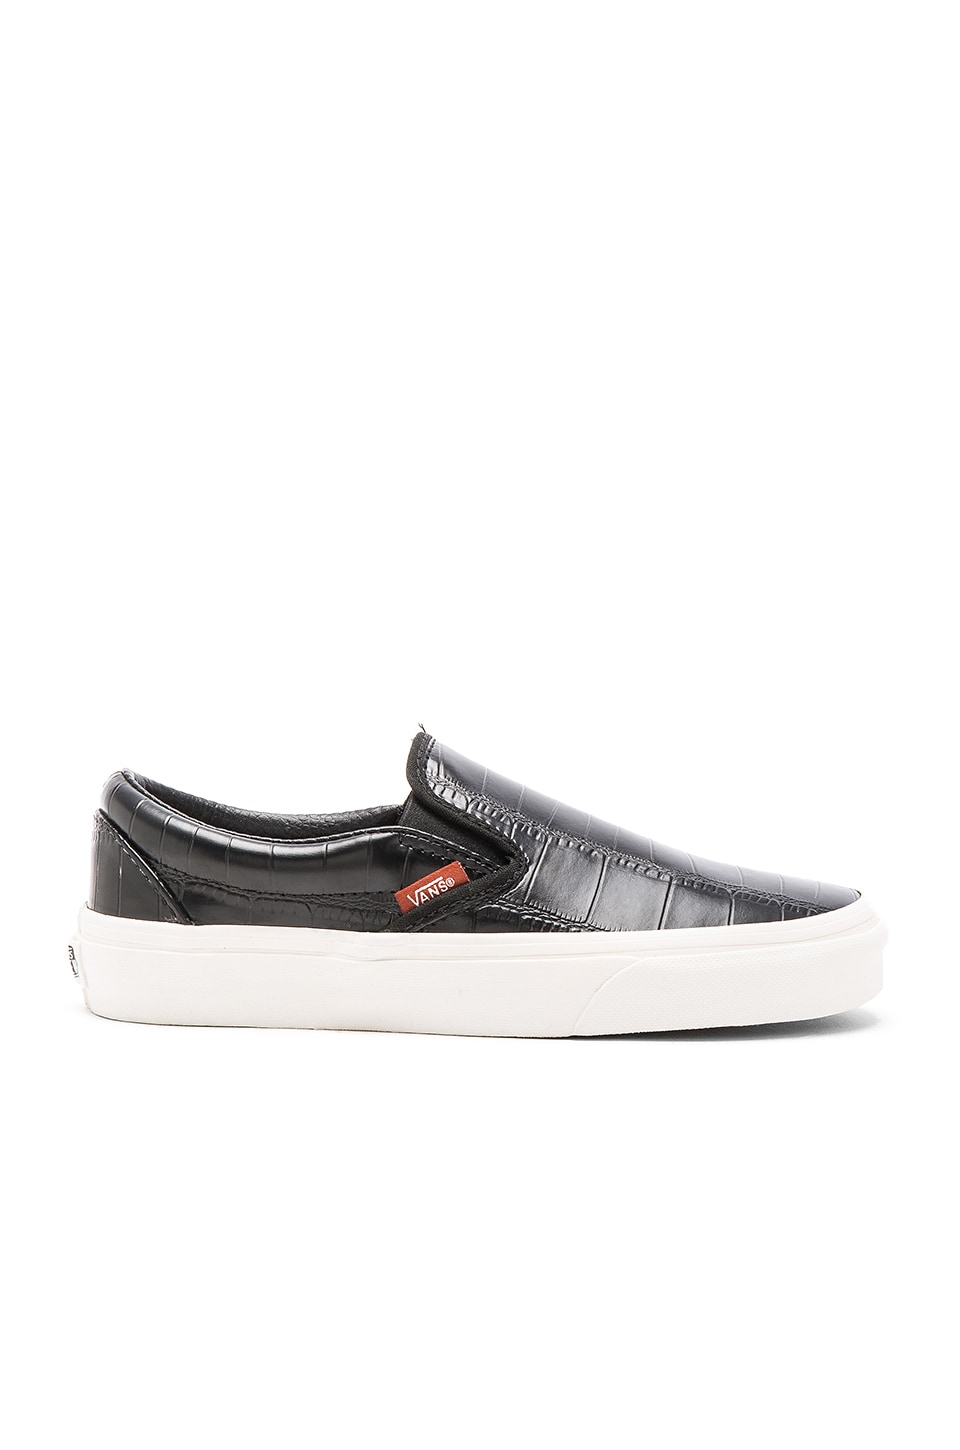 Vans Classic Croc Leather Slip On Sneaker in Black